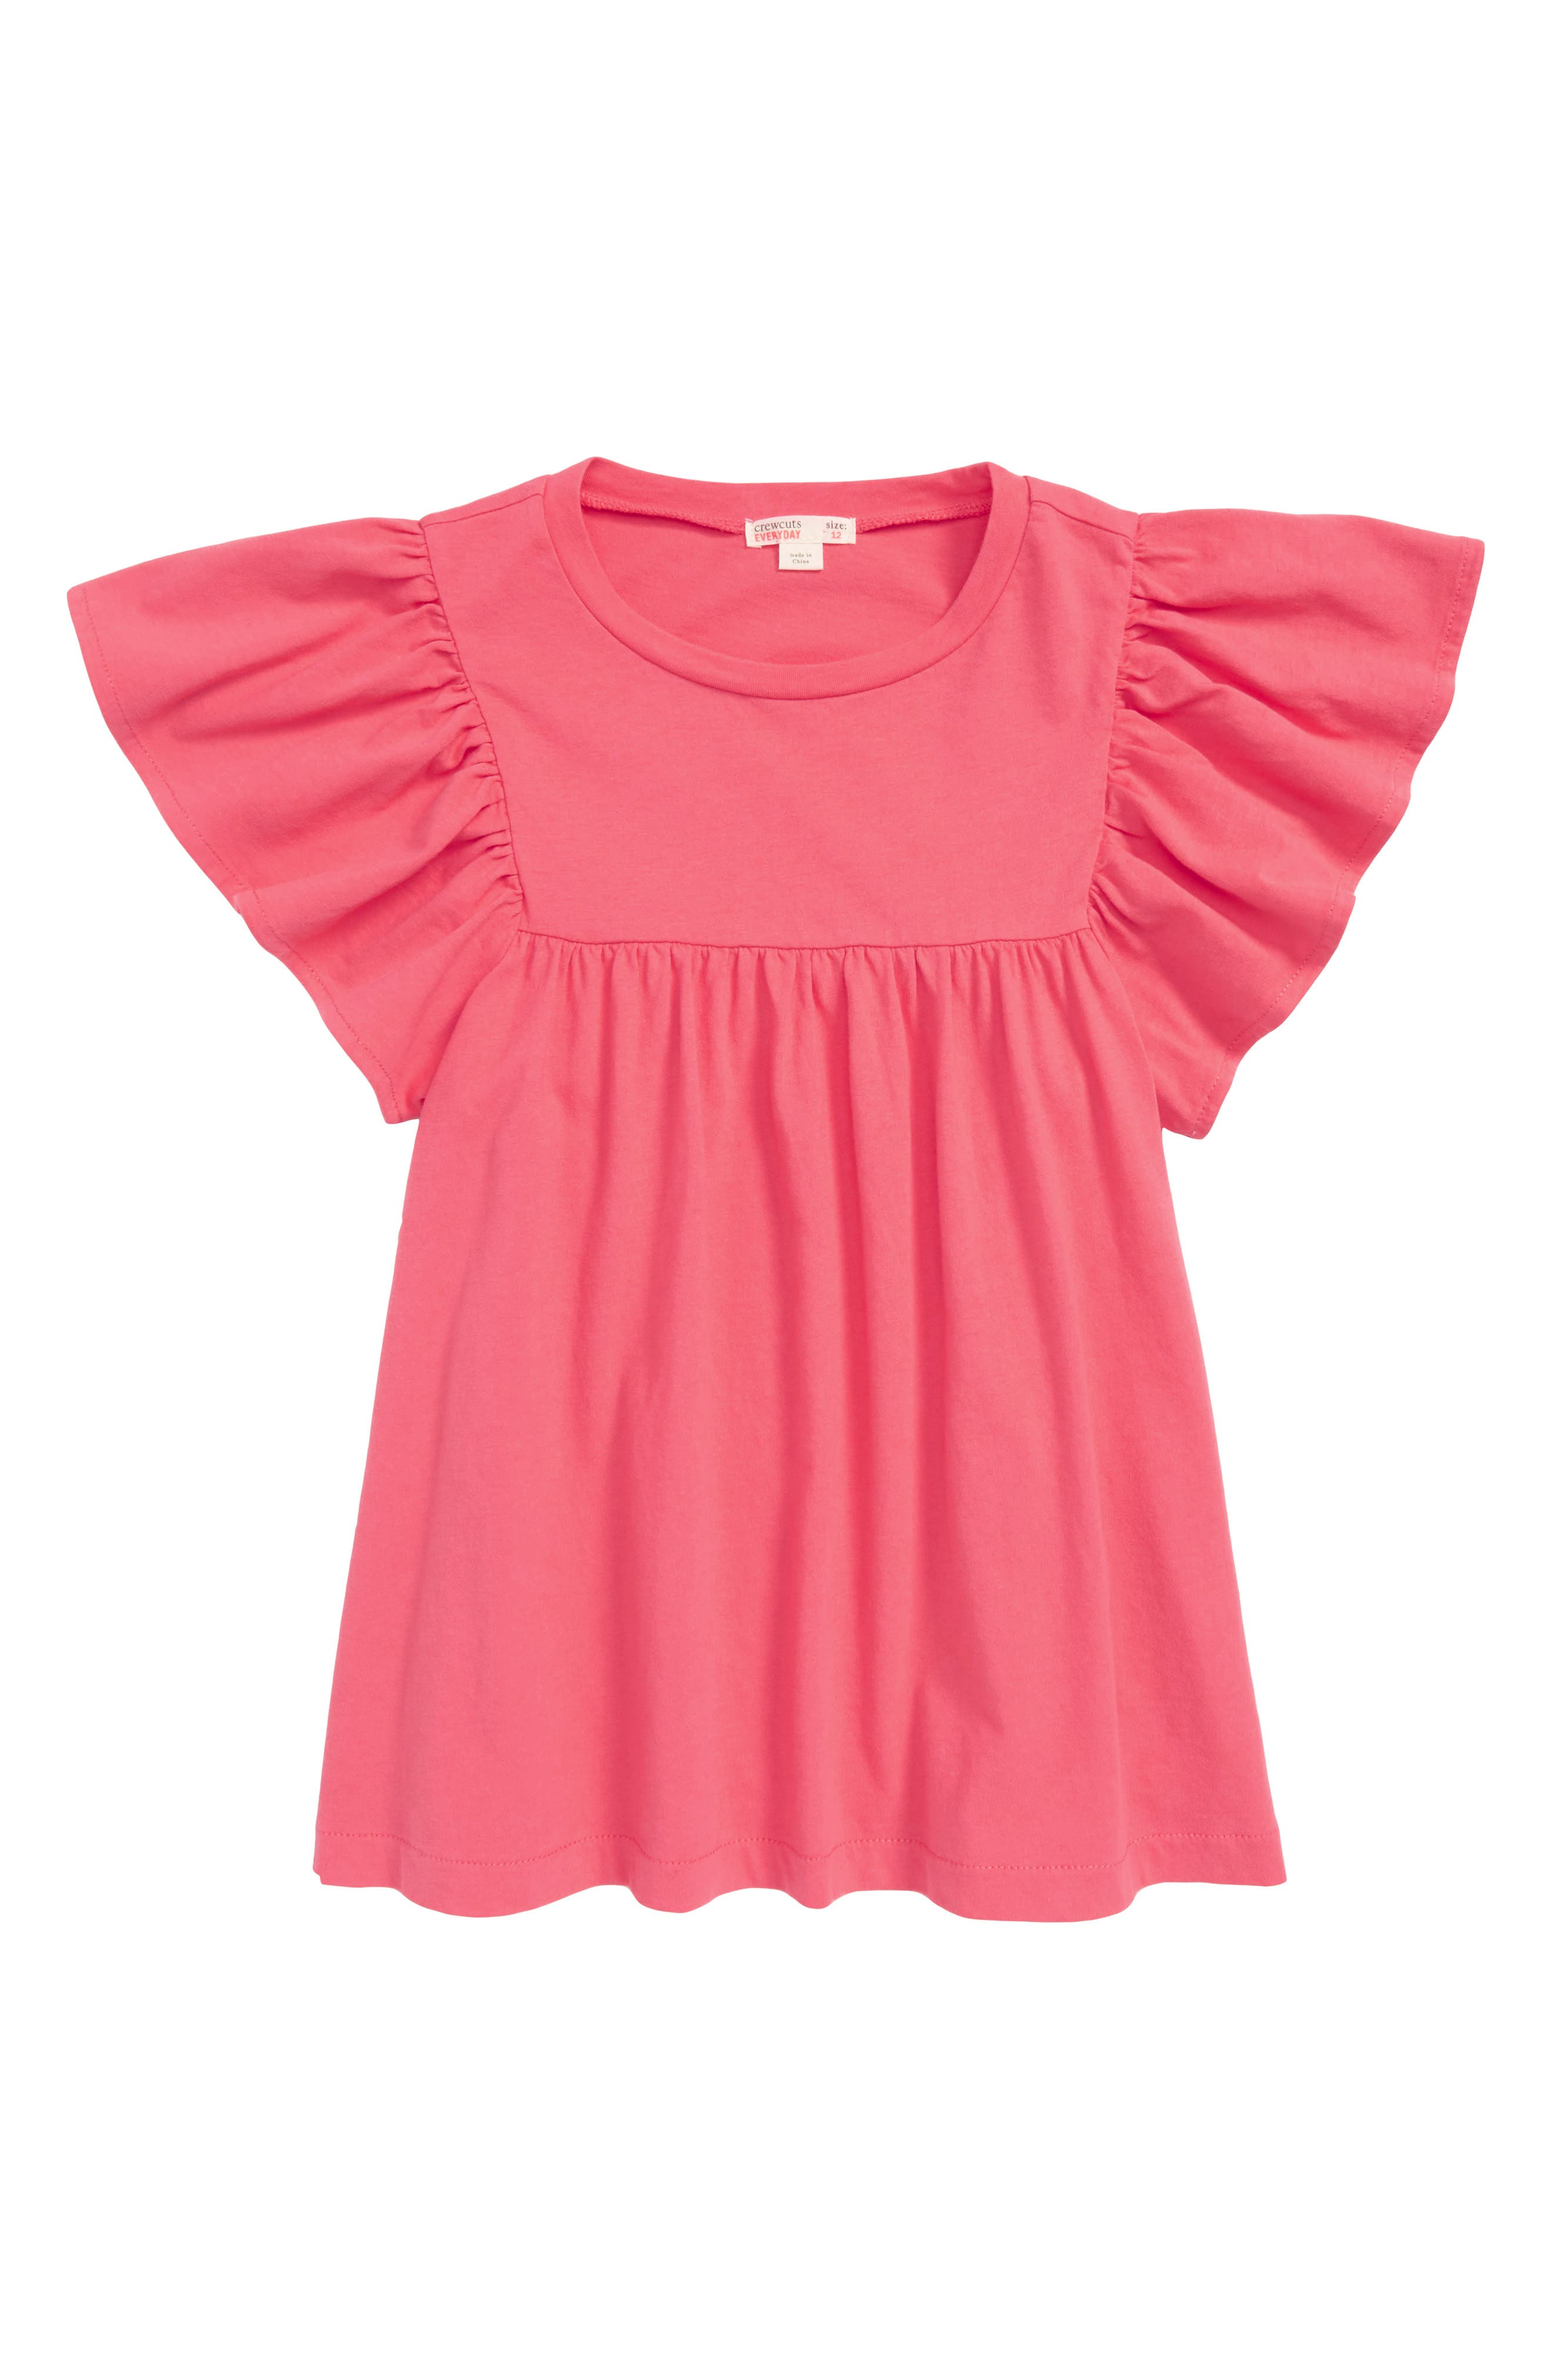 Bell Sleeve Tee,                             Main thumbnail 1, color,                             Neon Prim Rose